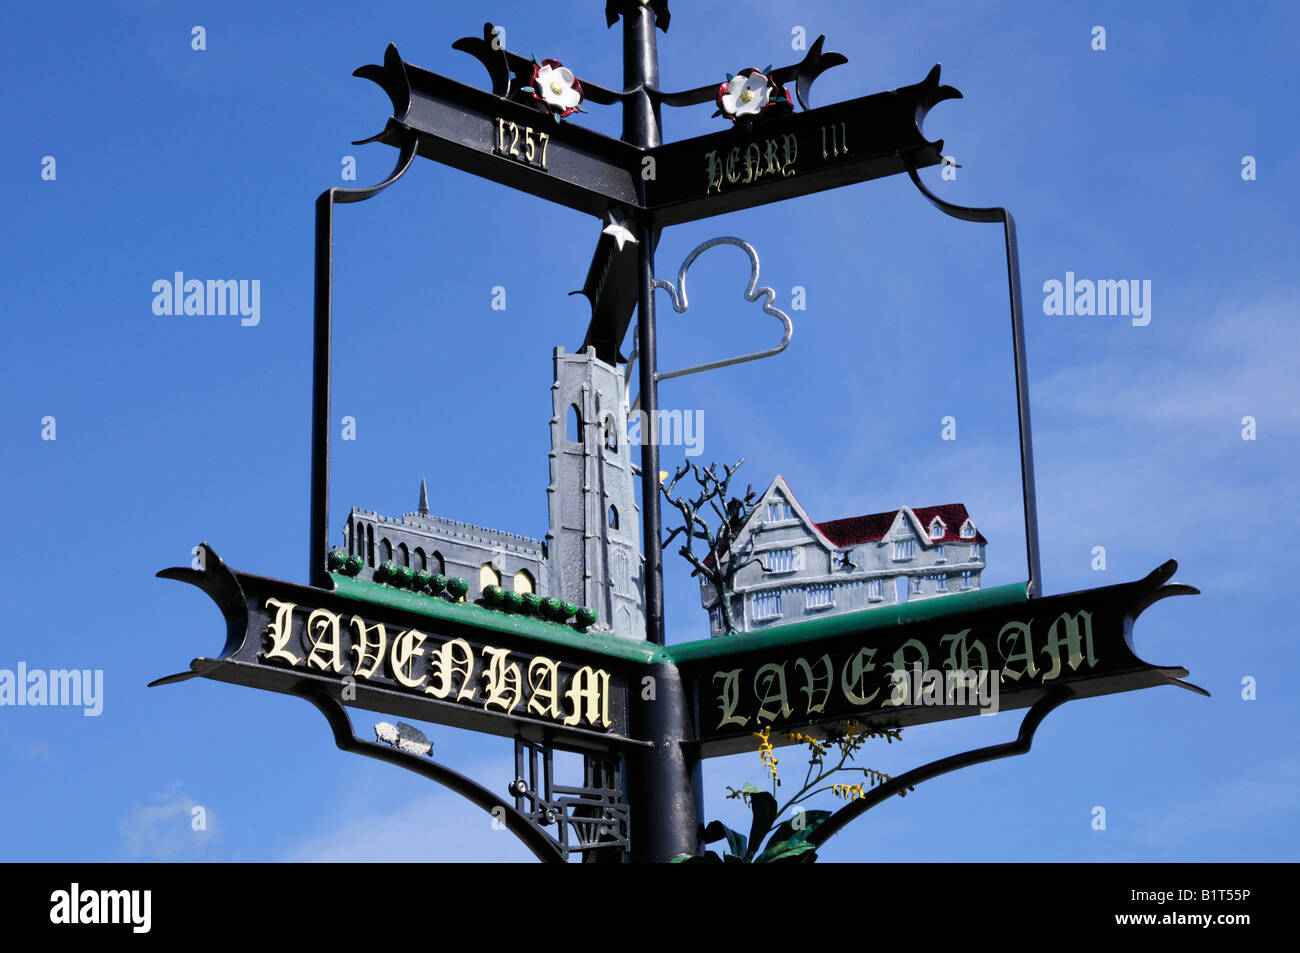 Lavenham Village Sign, Suffolk England UK - Stock Image